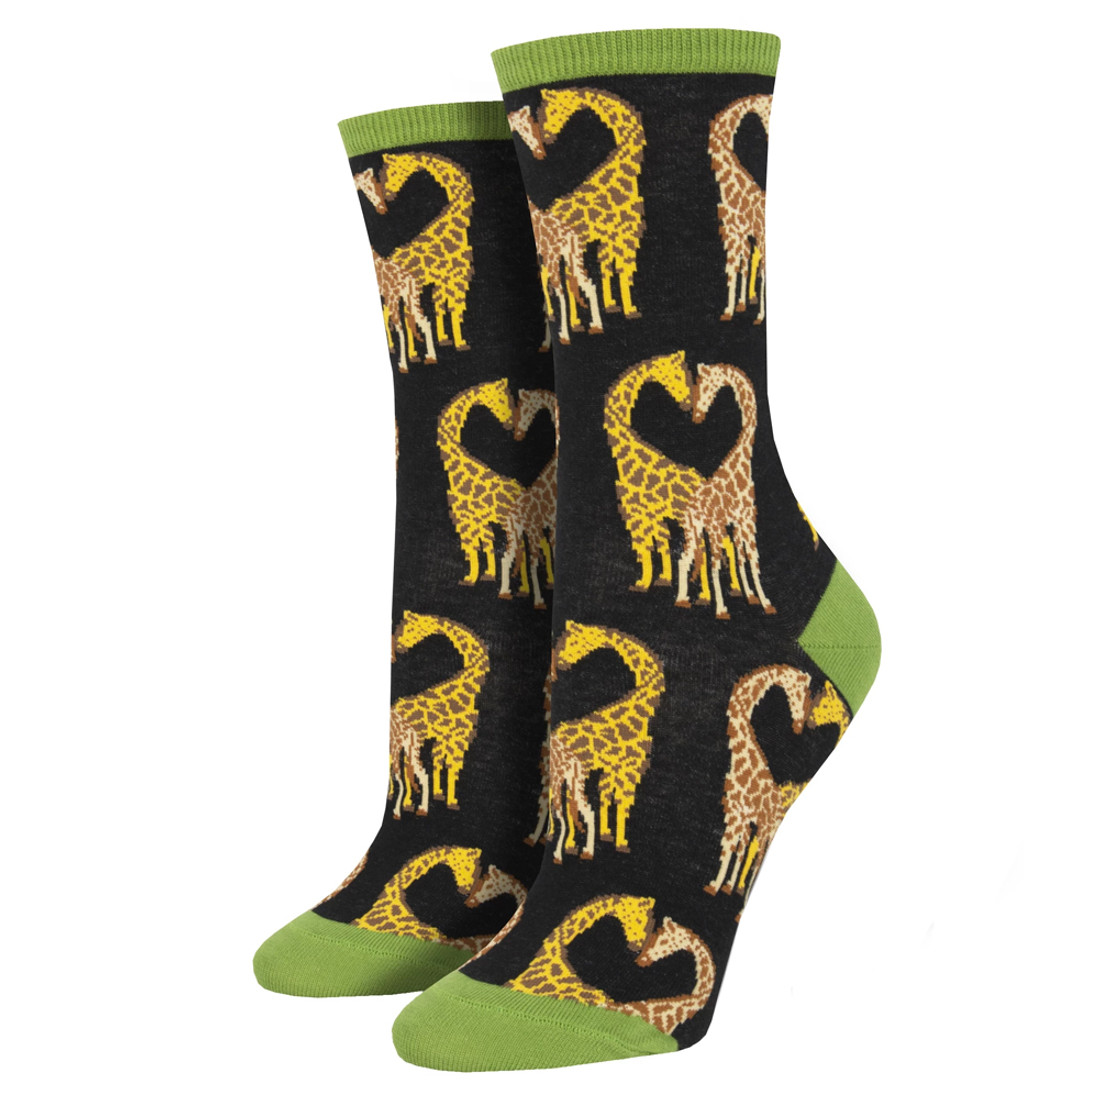 Longneck Love Giraffe Women's Crew Socks